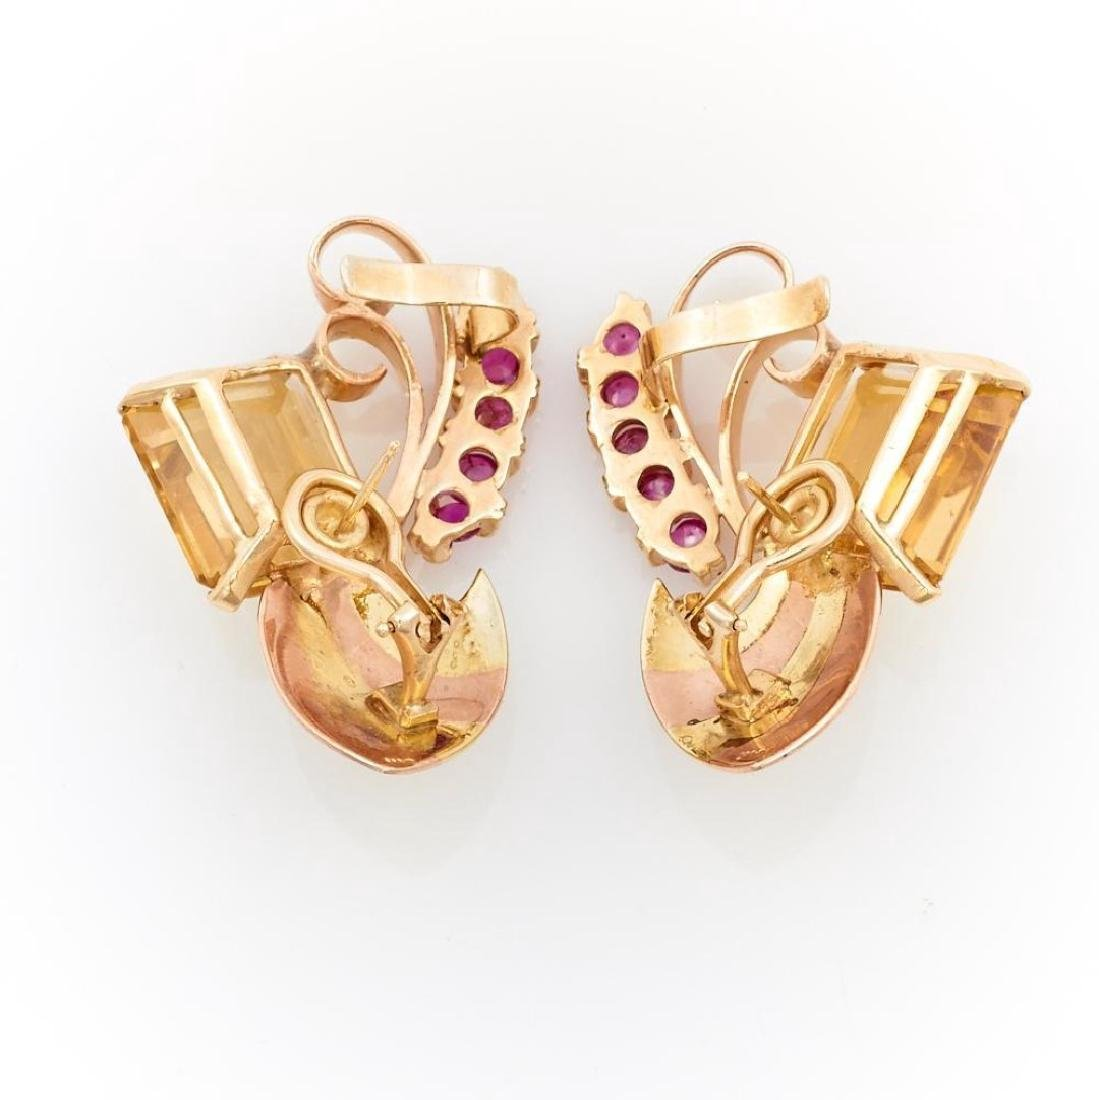 Citrine, ruby and 14k pink and yellow gold earrings - 2